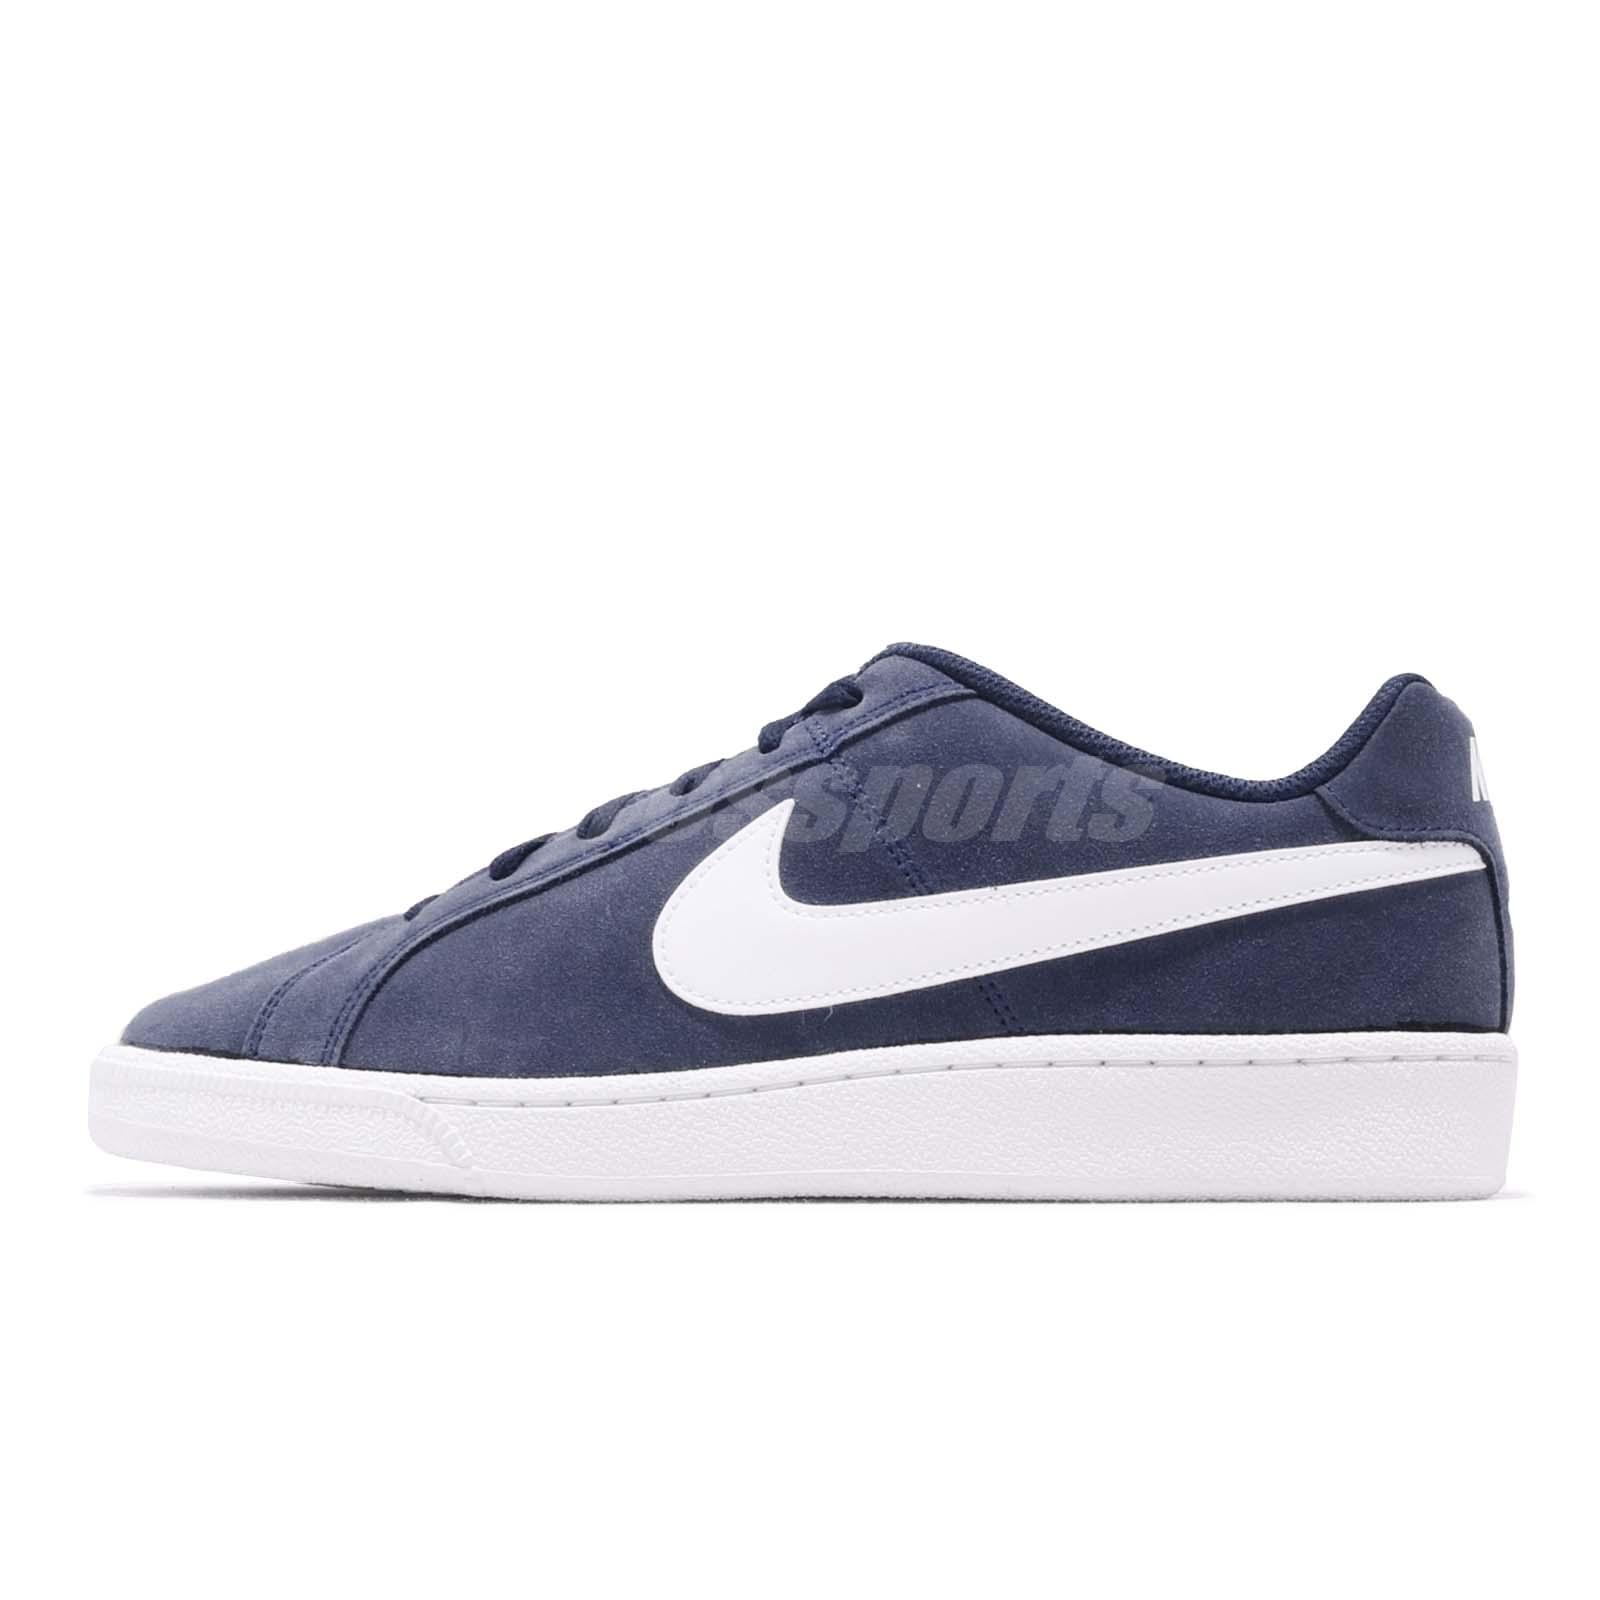 237f240cb63 Nike Court Royale Suede Midnight Navy White Men Casual Shoes Sneakers  819802-410